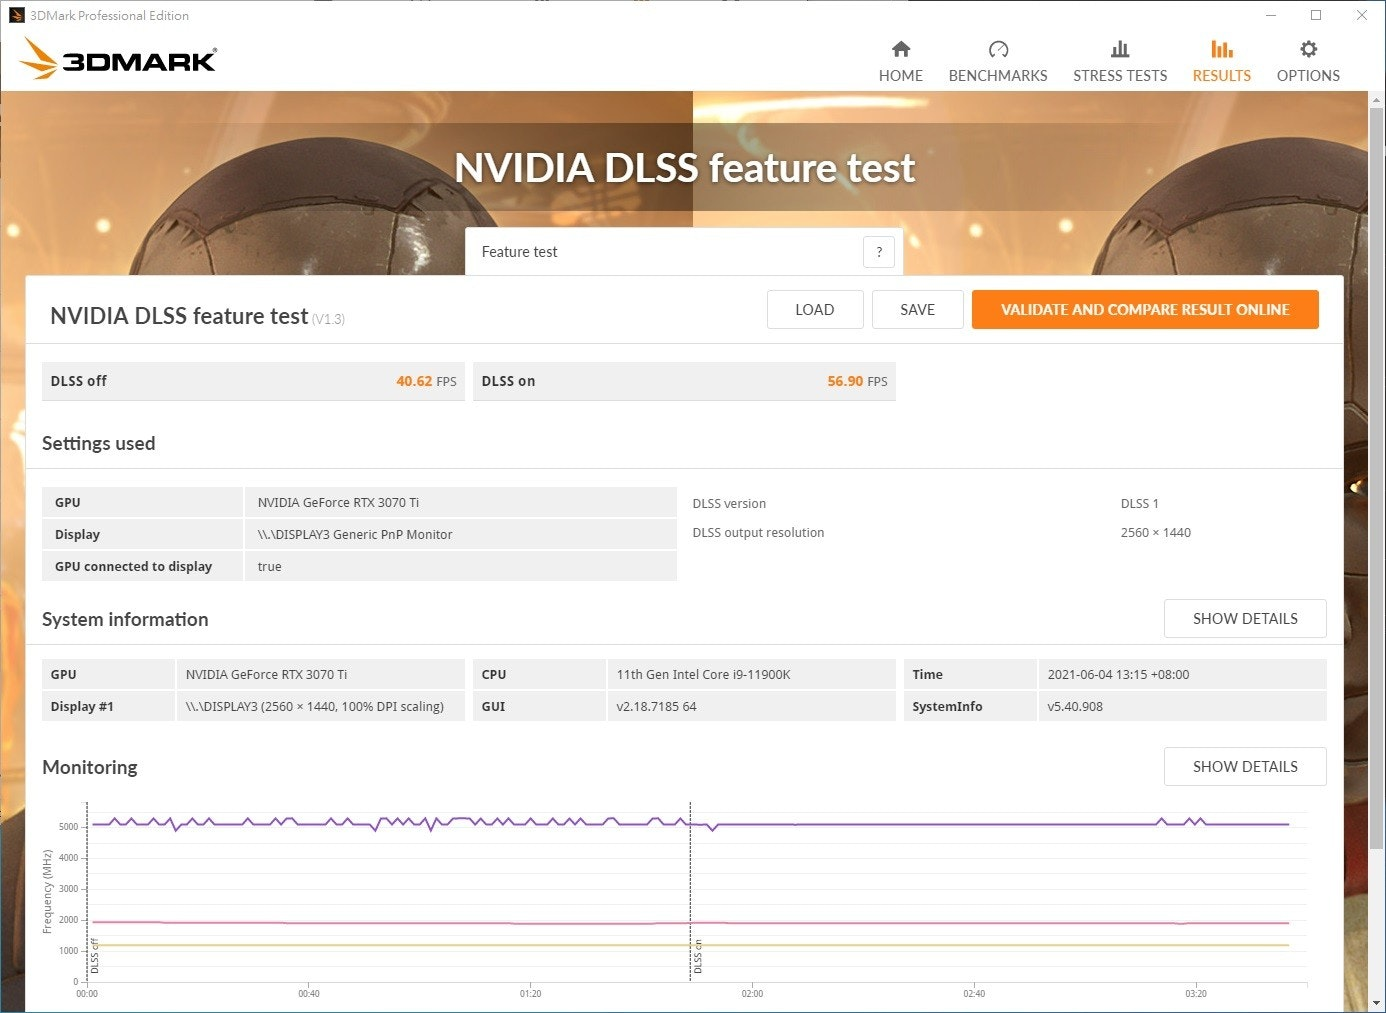 The photos mentioned 3DMark Professional Edition, 3DMARK, НОМЕ, including graphics cards, NVIDIA GeForce RTX 3070, computers, ASUS, NVIDIA